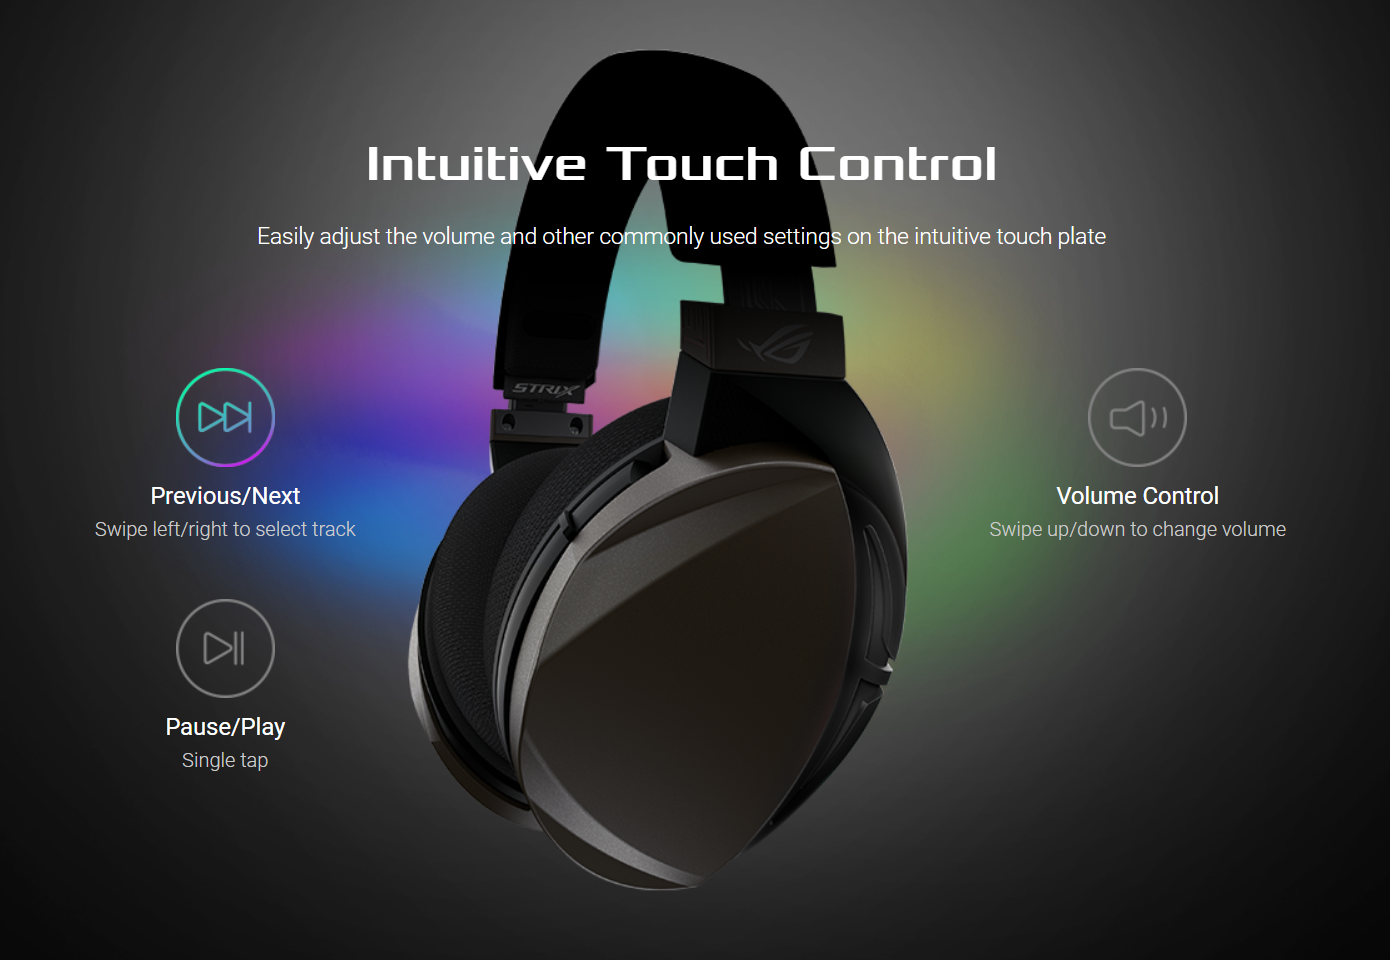 Intuitive Touch Control - Easily adjust the volume and other commonly used settings on the intuitive touch plate